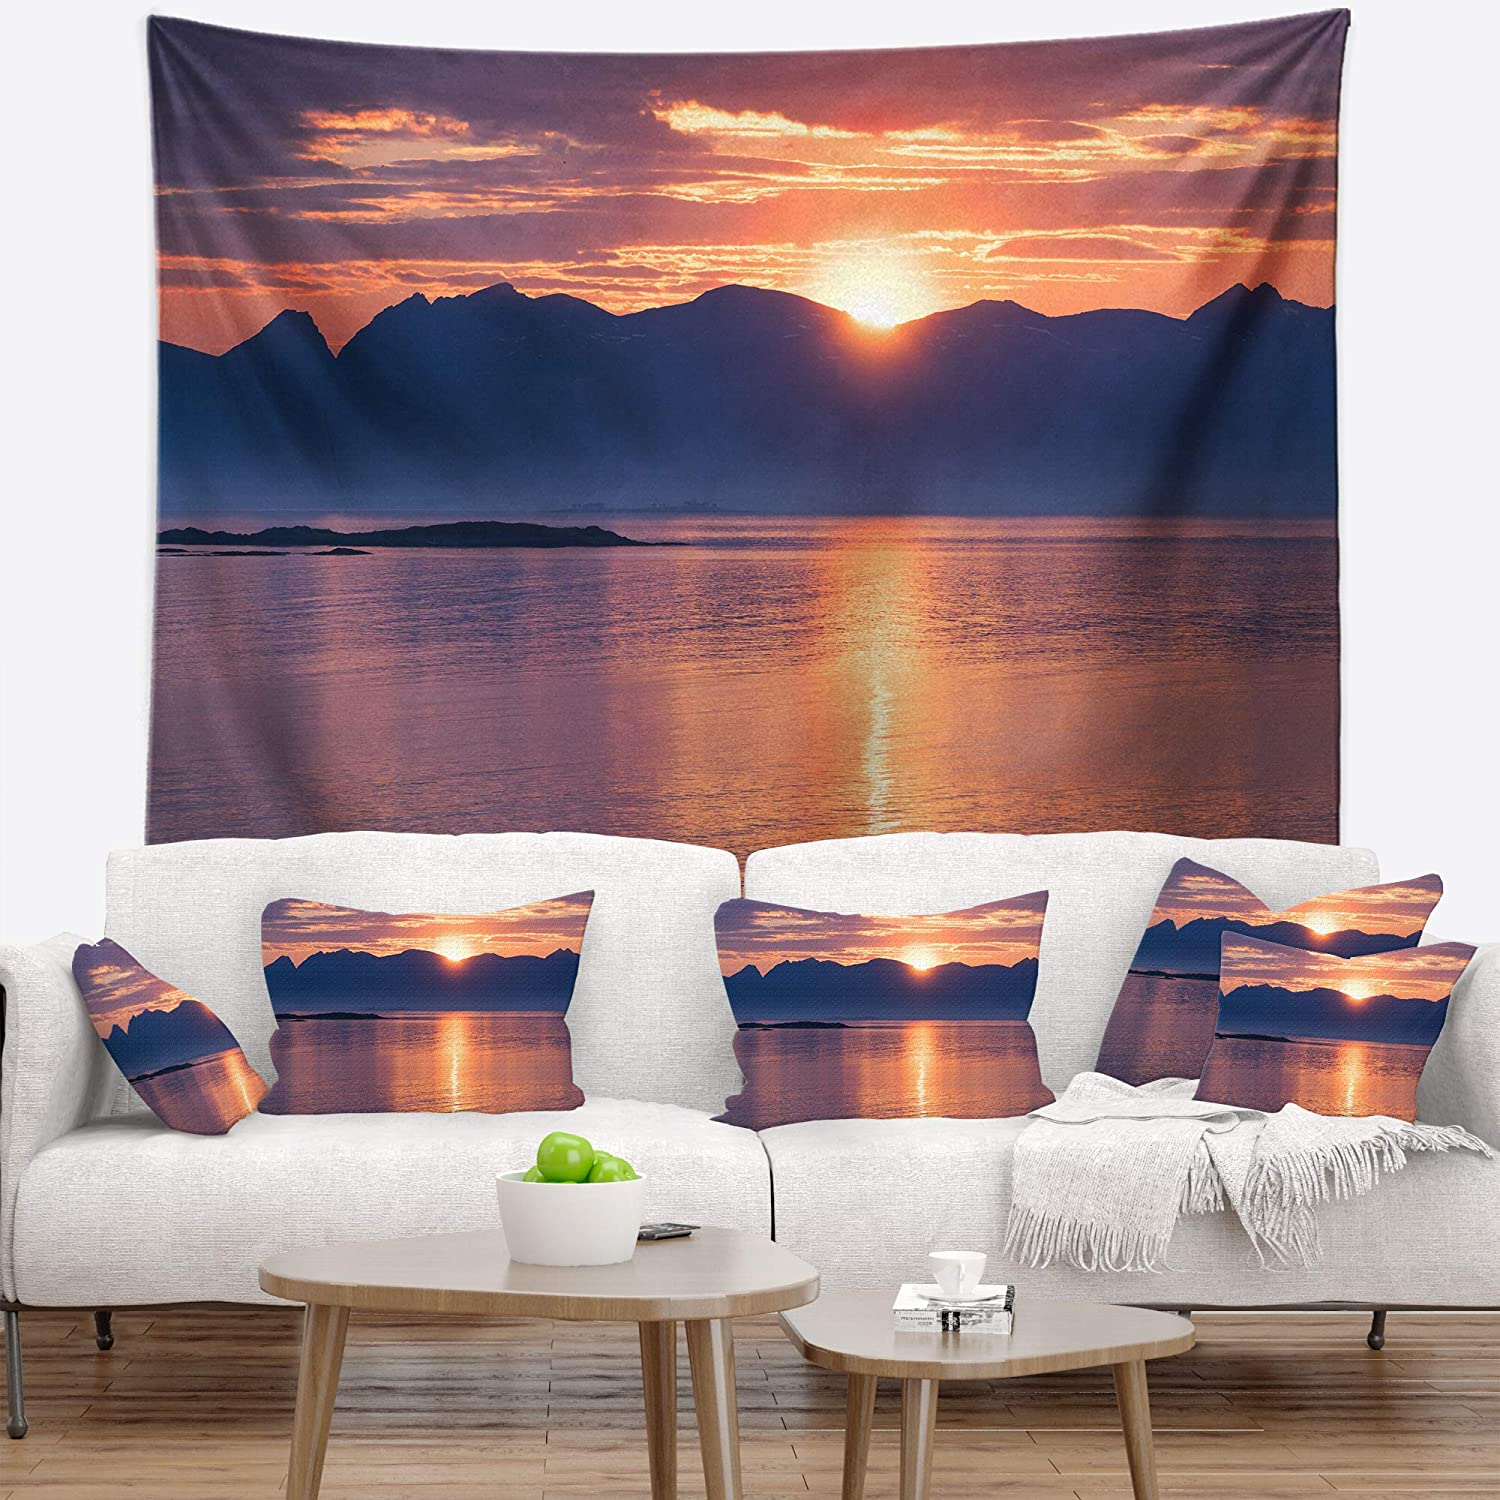 Designart TAP11462-39-32 ' Norwegian Seashore at Sunset' Modern Seascape Blanket Décor Art for Home and Office Wall Tapestry Medium: 39 in. x 32 in. Created On Lightweight Polyester Fabric